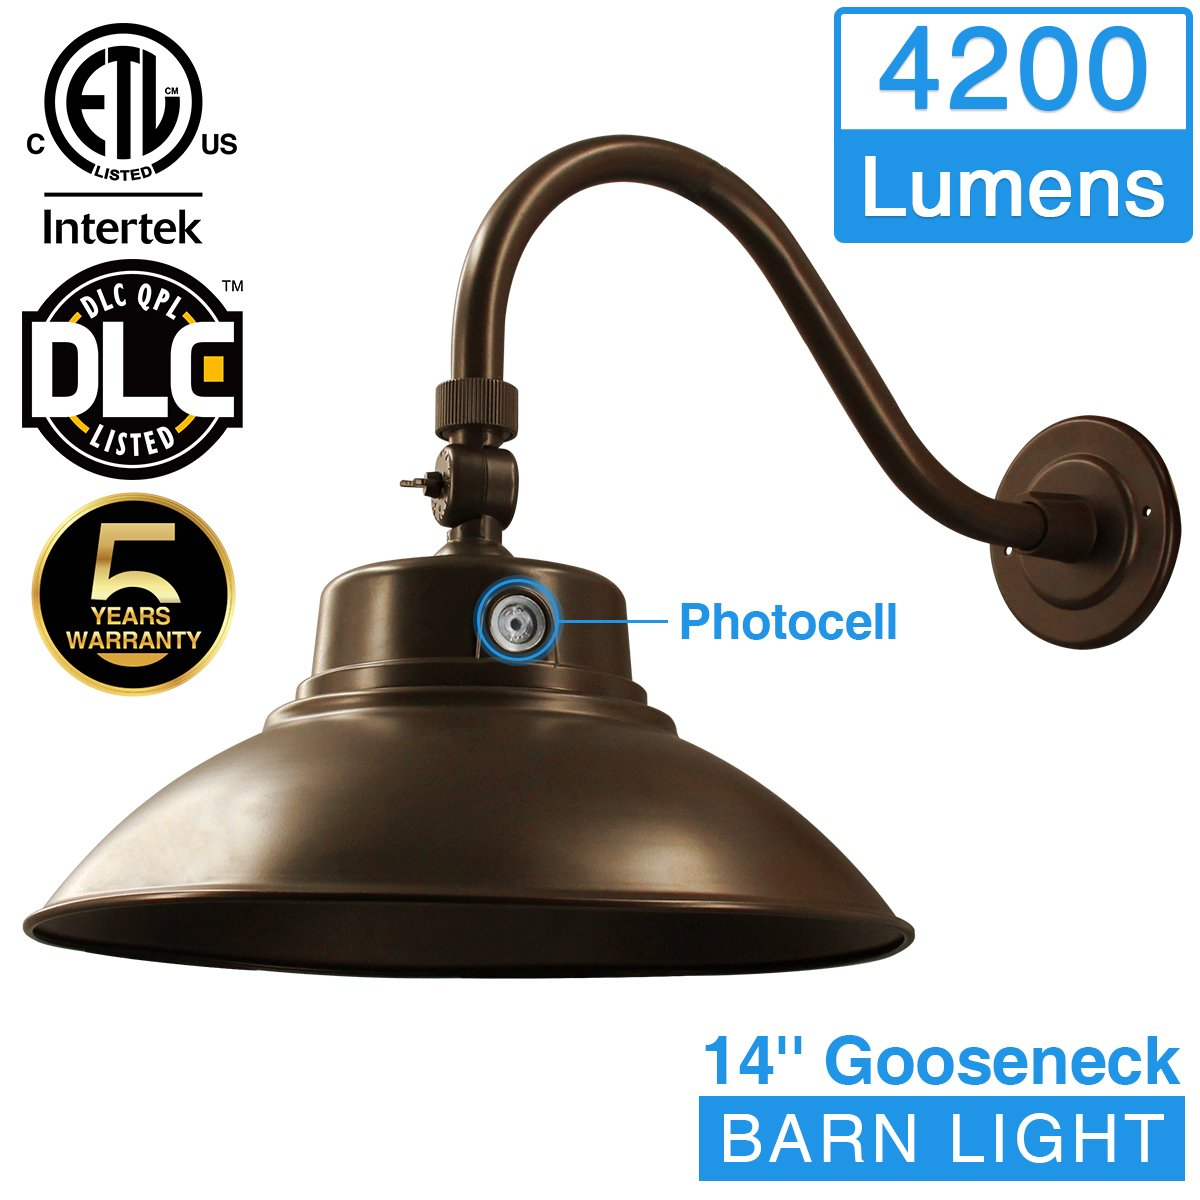 14in. Bronze LED Gooseneck Barn Light 42W 4200lm Daylight LED Fixture for Indoor/Outdoor Use - Photocell Included - Swivel Head,Energy Star Rated - ETL Listed - Sign Lighting - 5000K Daylight 1pk